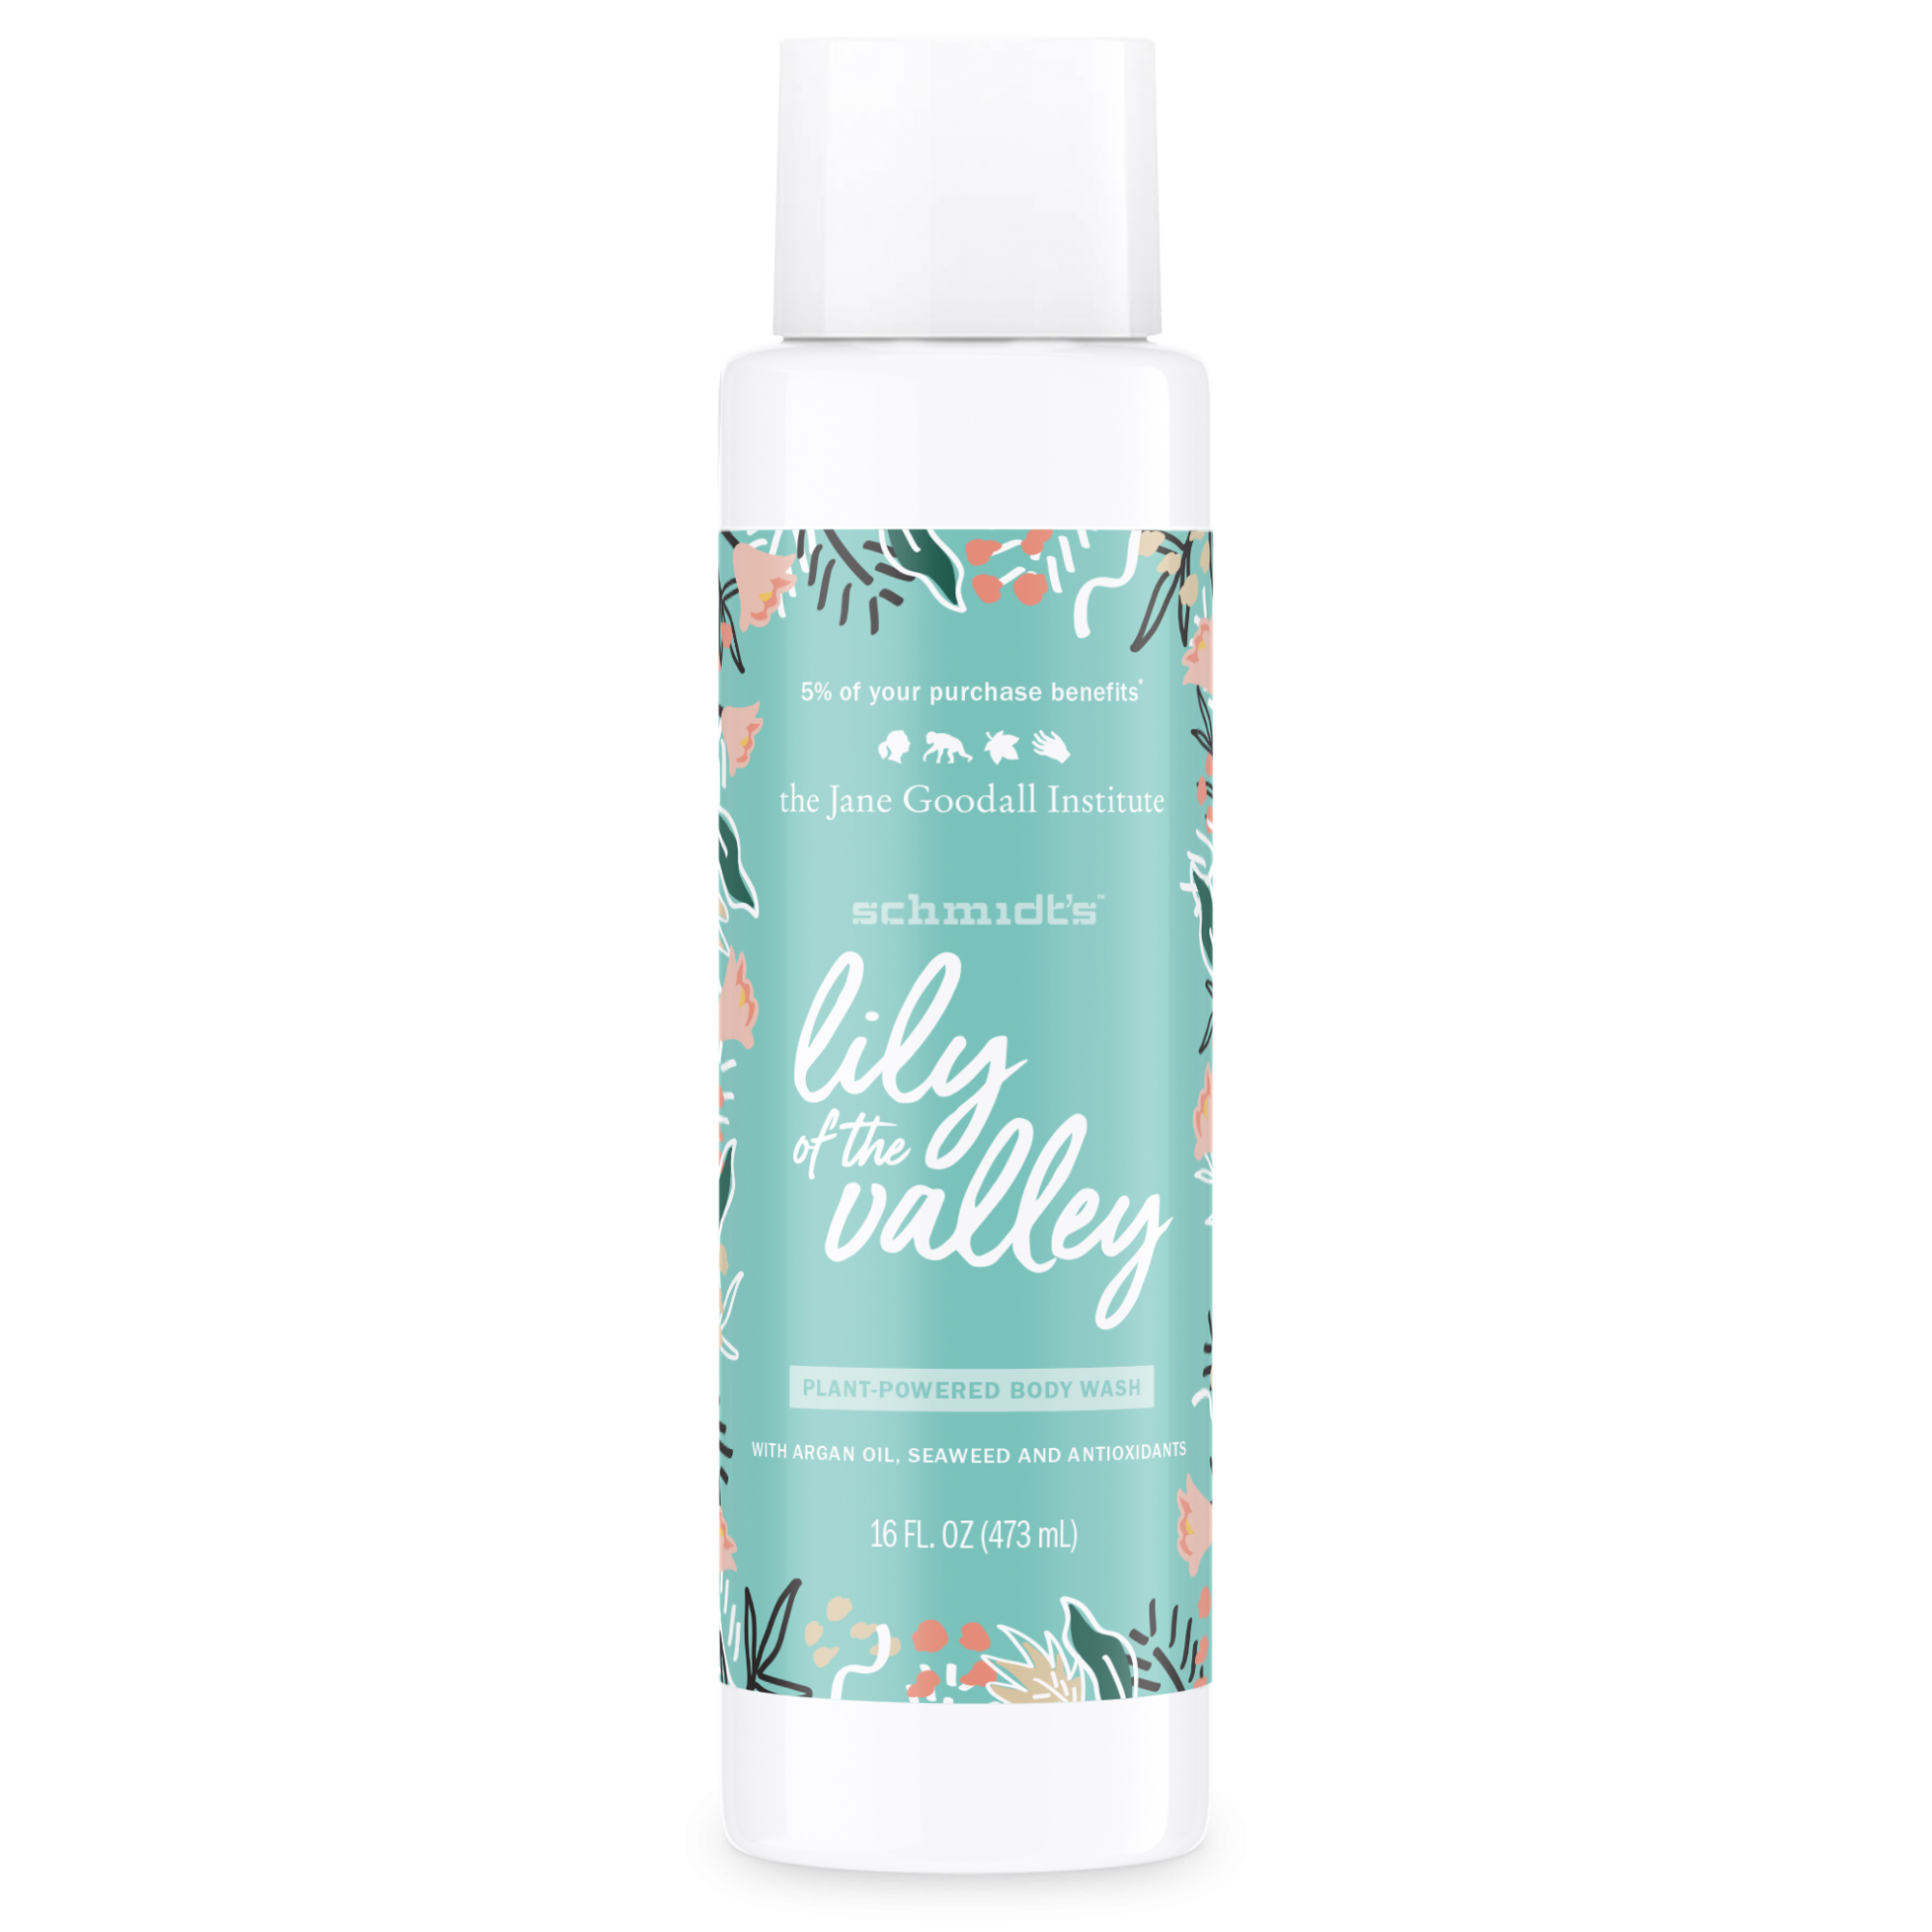 Schmidt's Lily of the Valley Body Wash